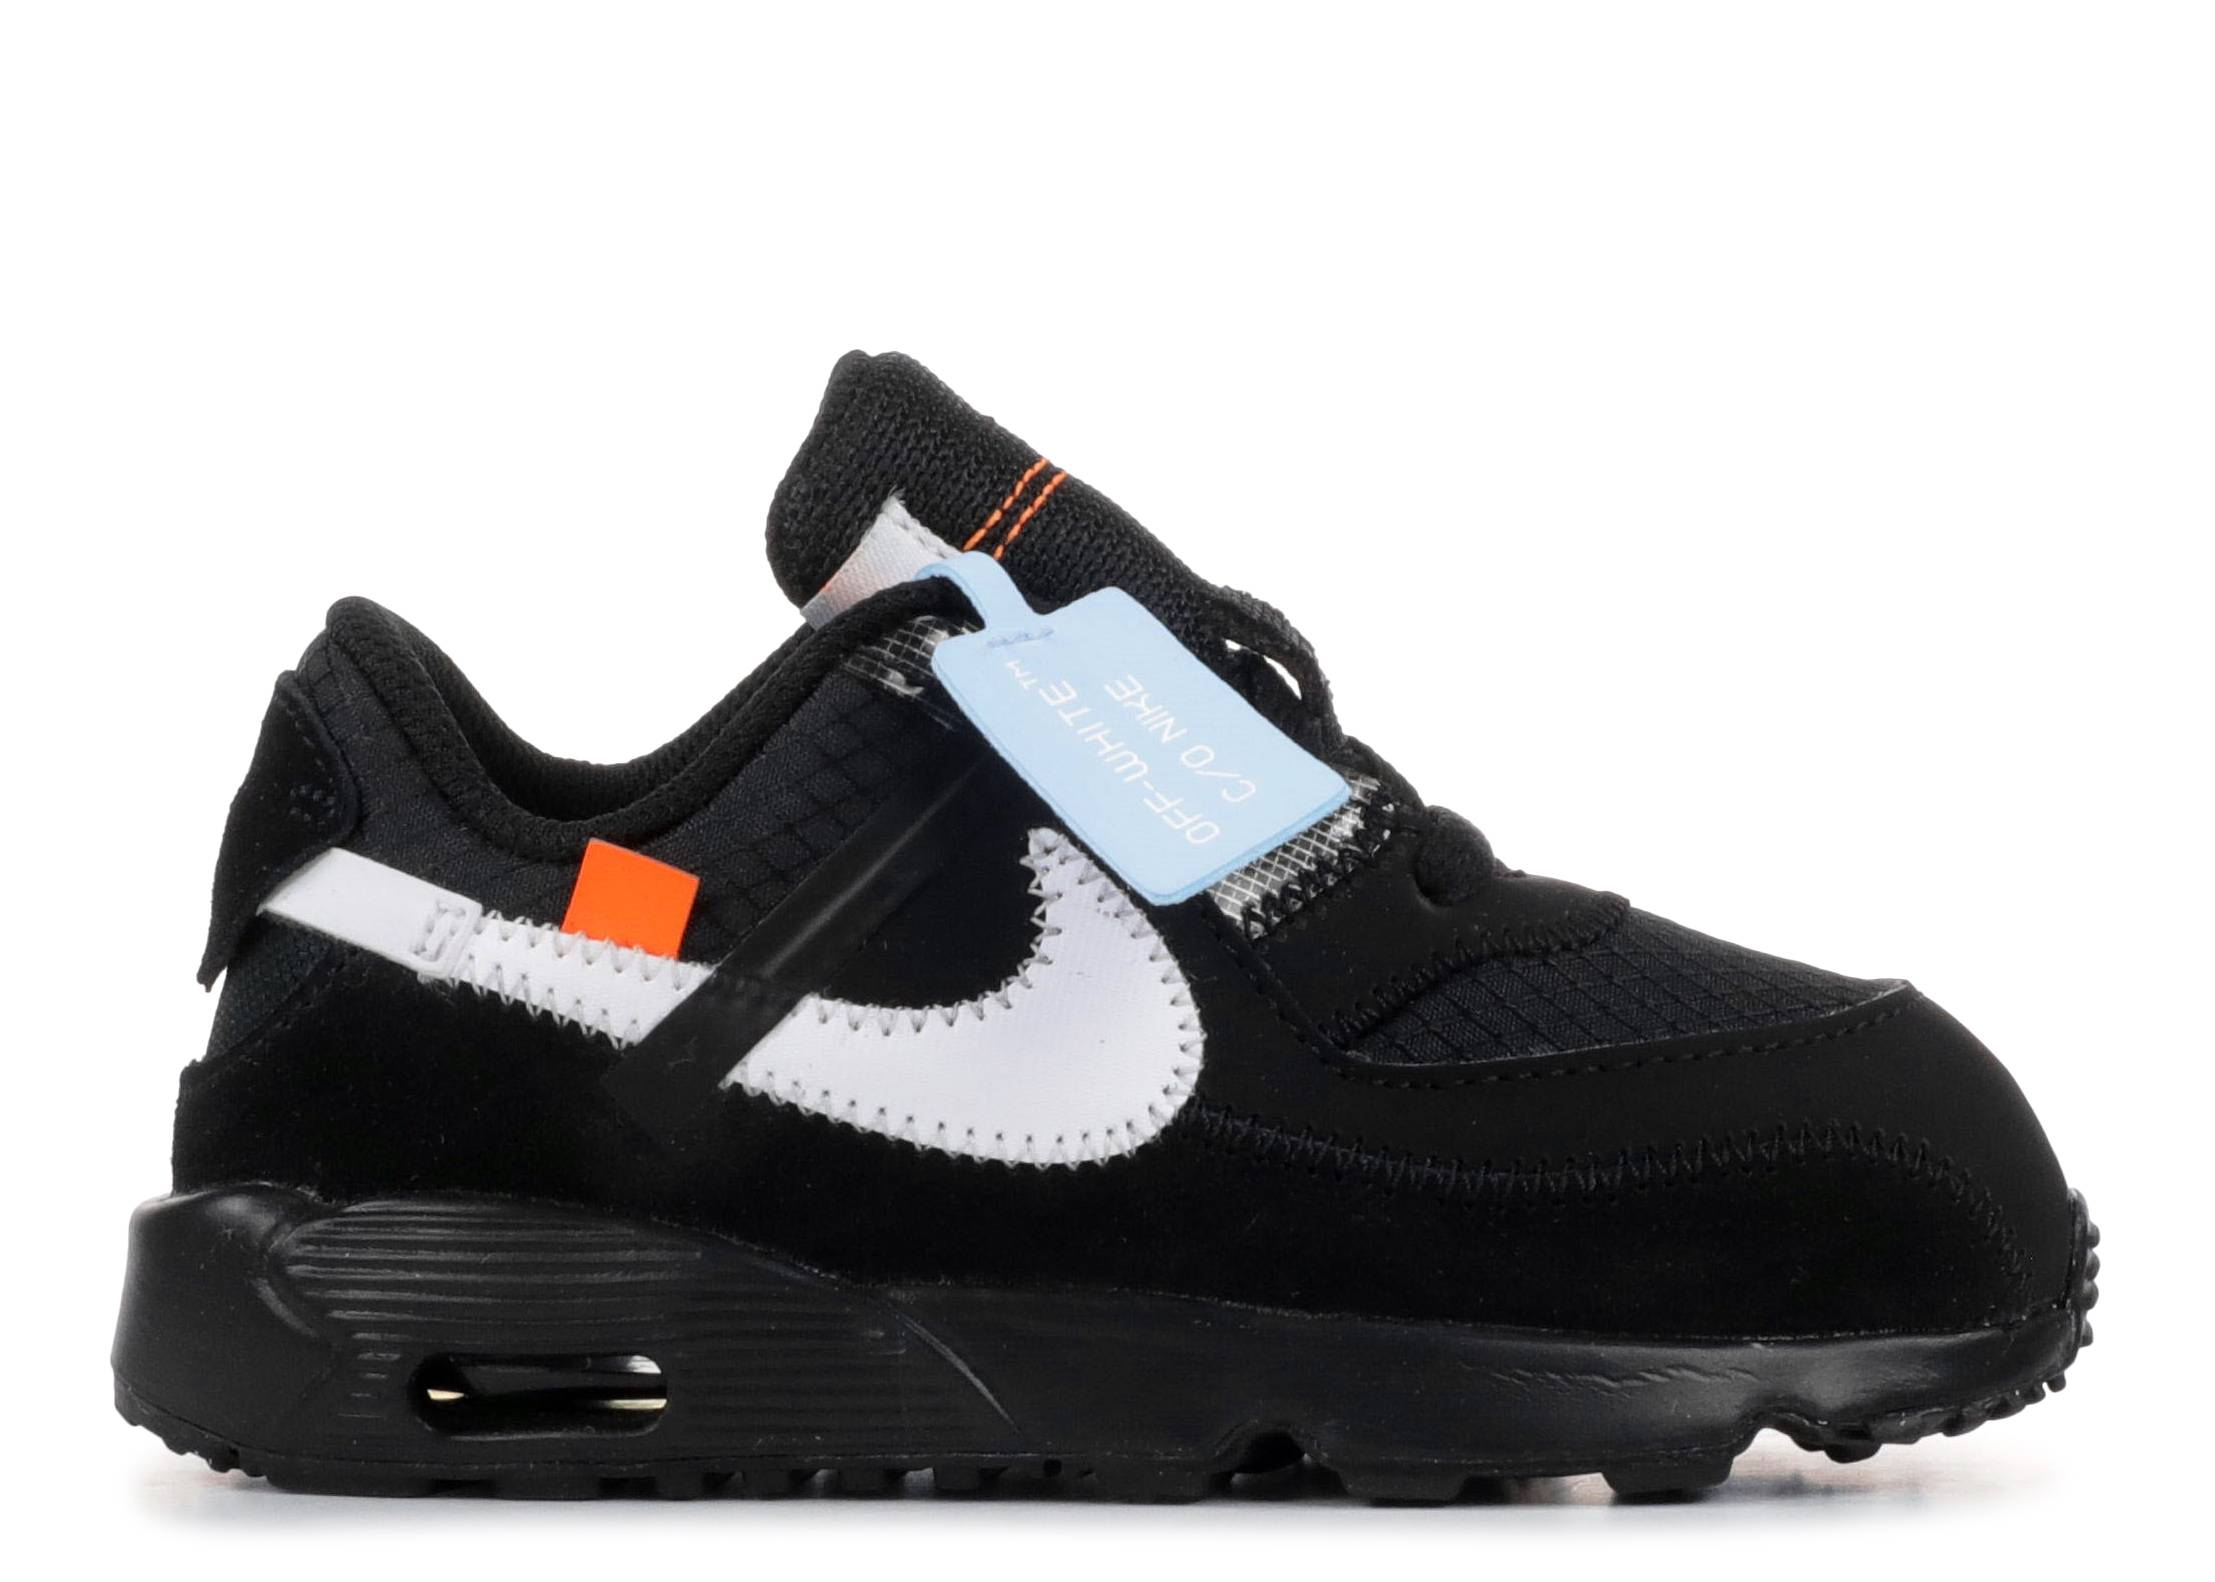 027eece757 The 10: Nike Air Max 90 Bt